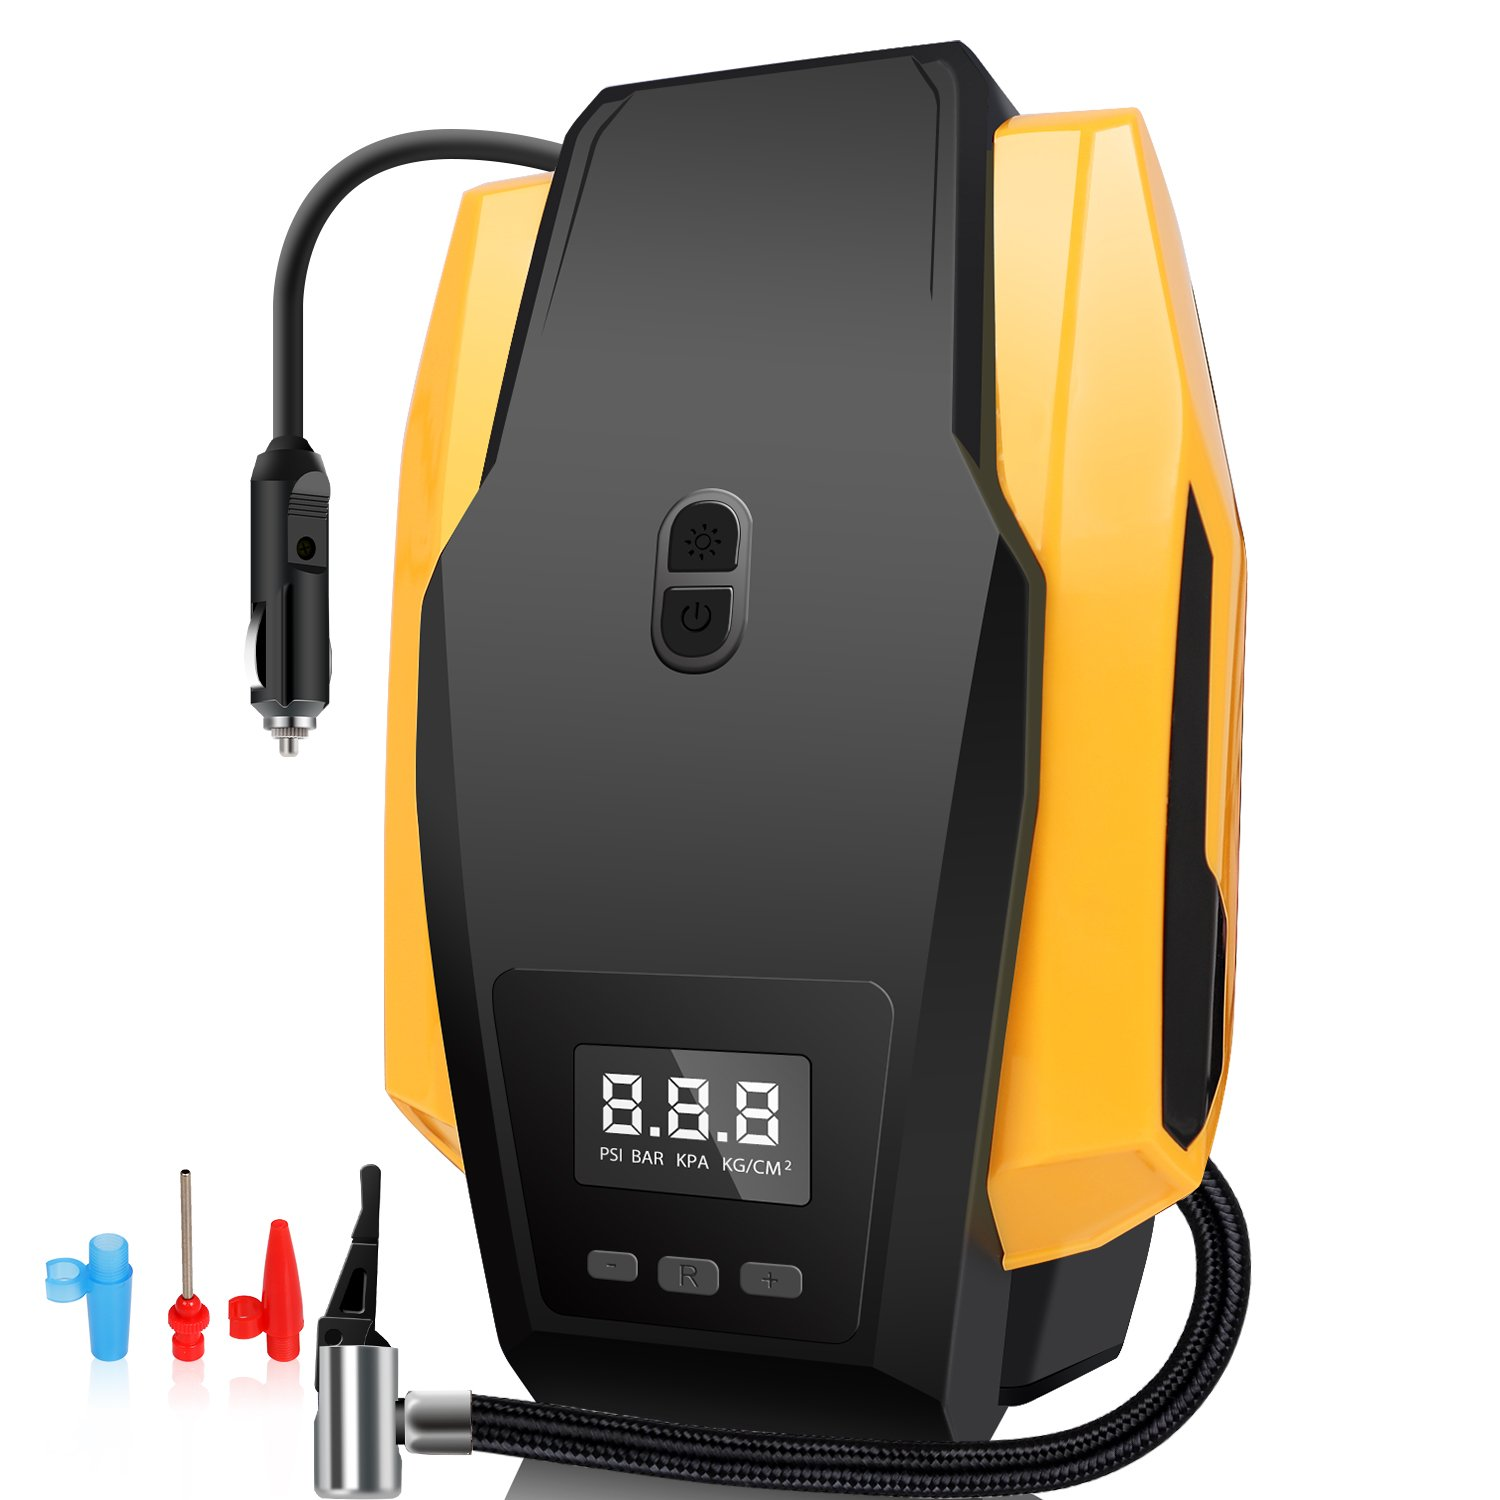 JARLINK Portable Air Compressor Pump, 12V 150 PSI Auto Electric Digital Tire Inflator with Preset Pressure Shut Off and Bright LED Light for Car, Truck, Bicycle, Basketballs